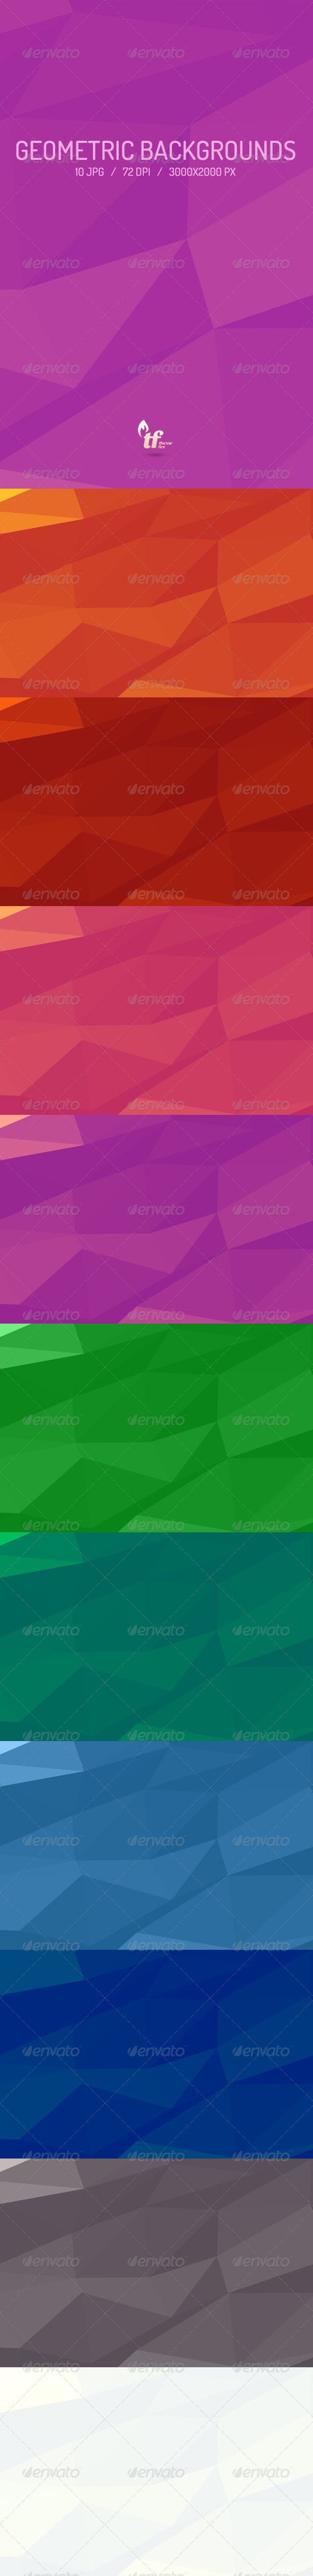 GraphicRiver Geometric Backgrounds 6689303